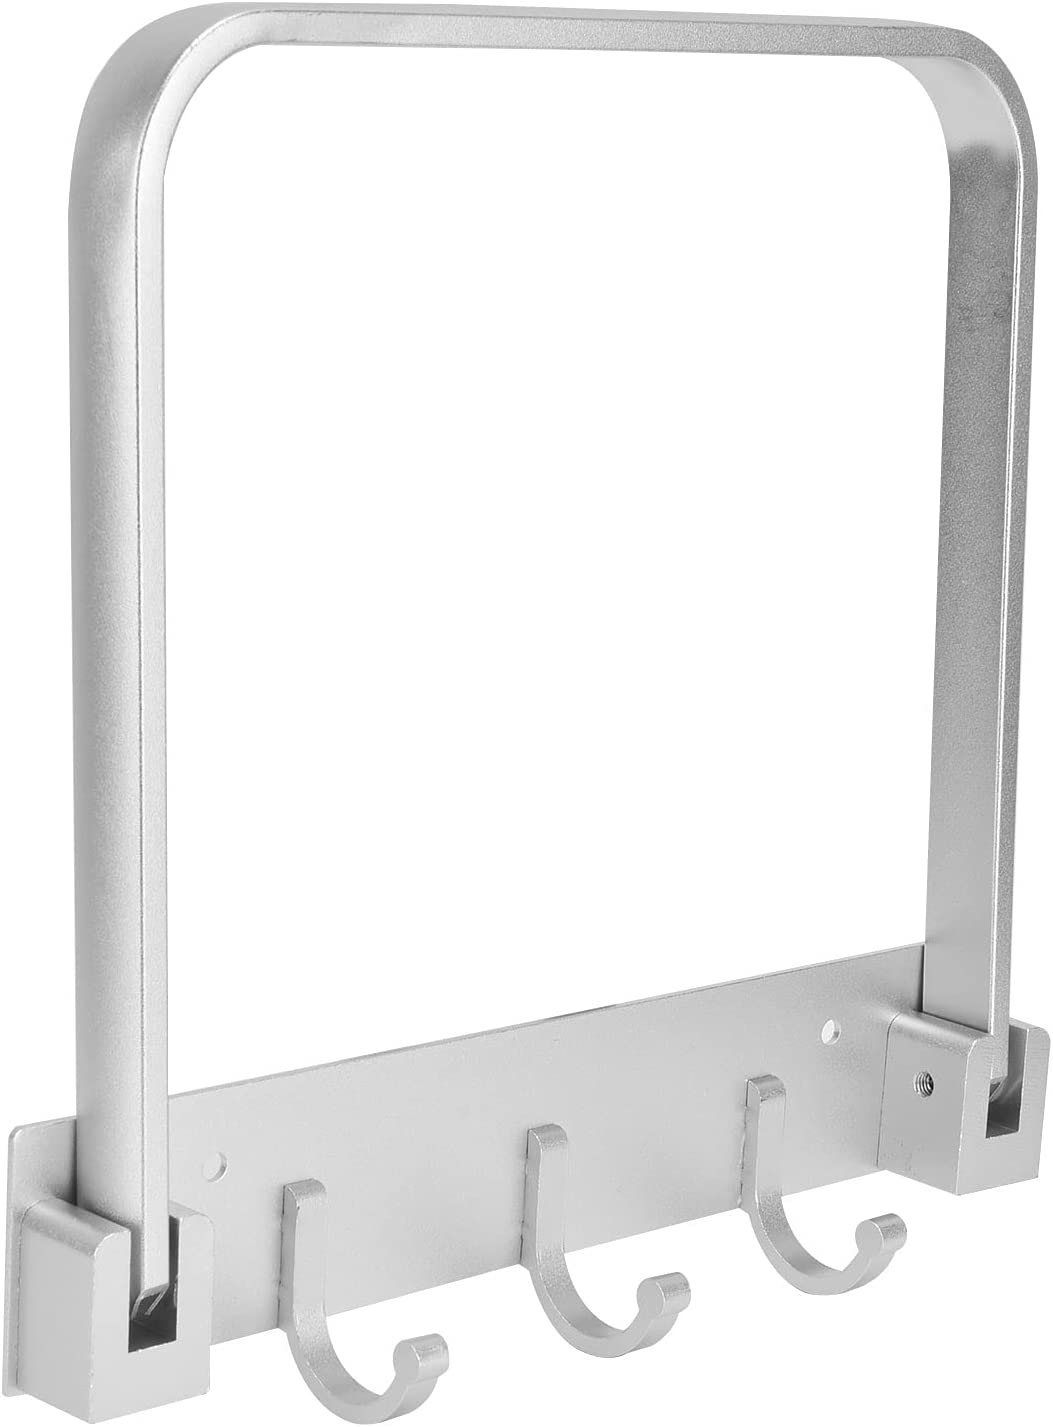 Towel Sale Rack Collapsible Bathroom online shopping Multifuncti Hooks with Row